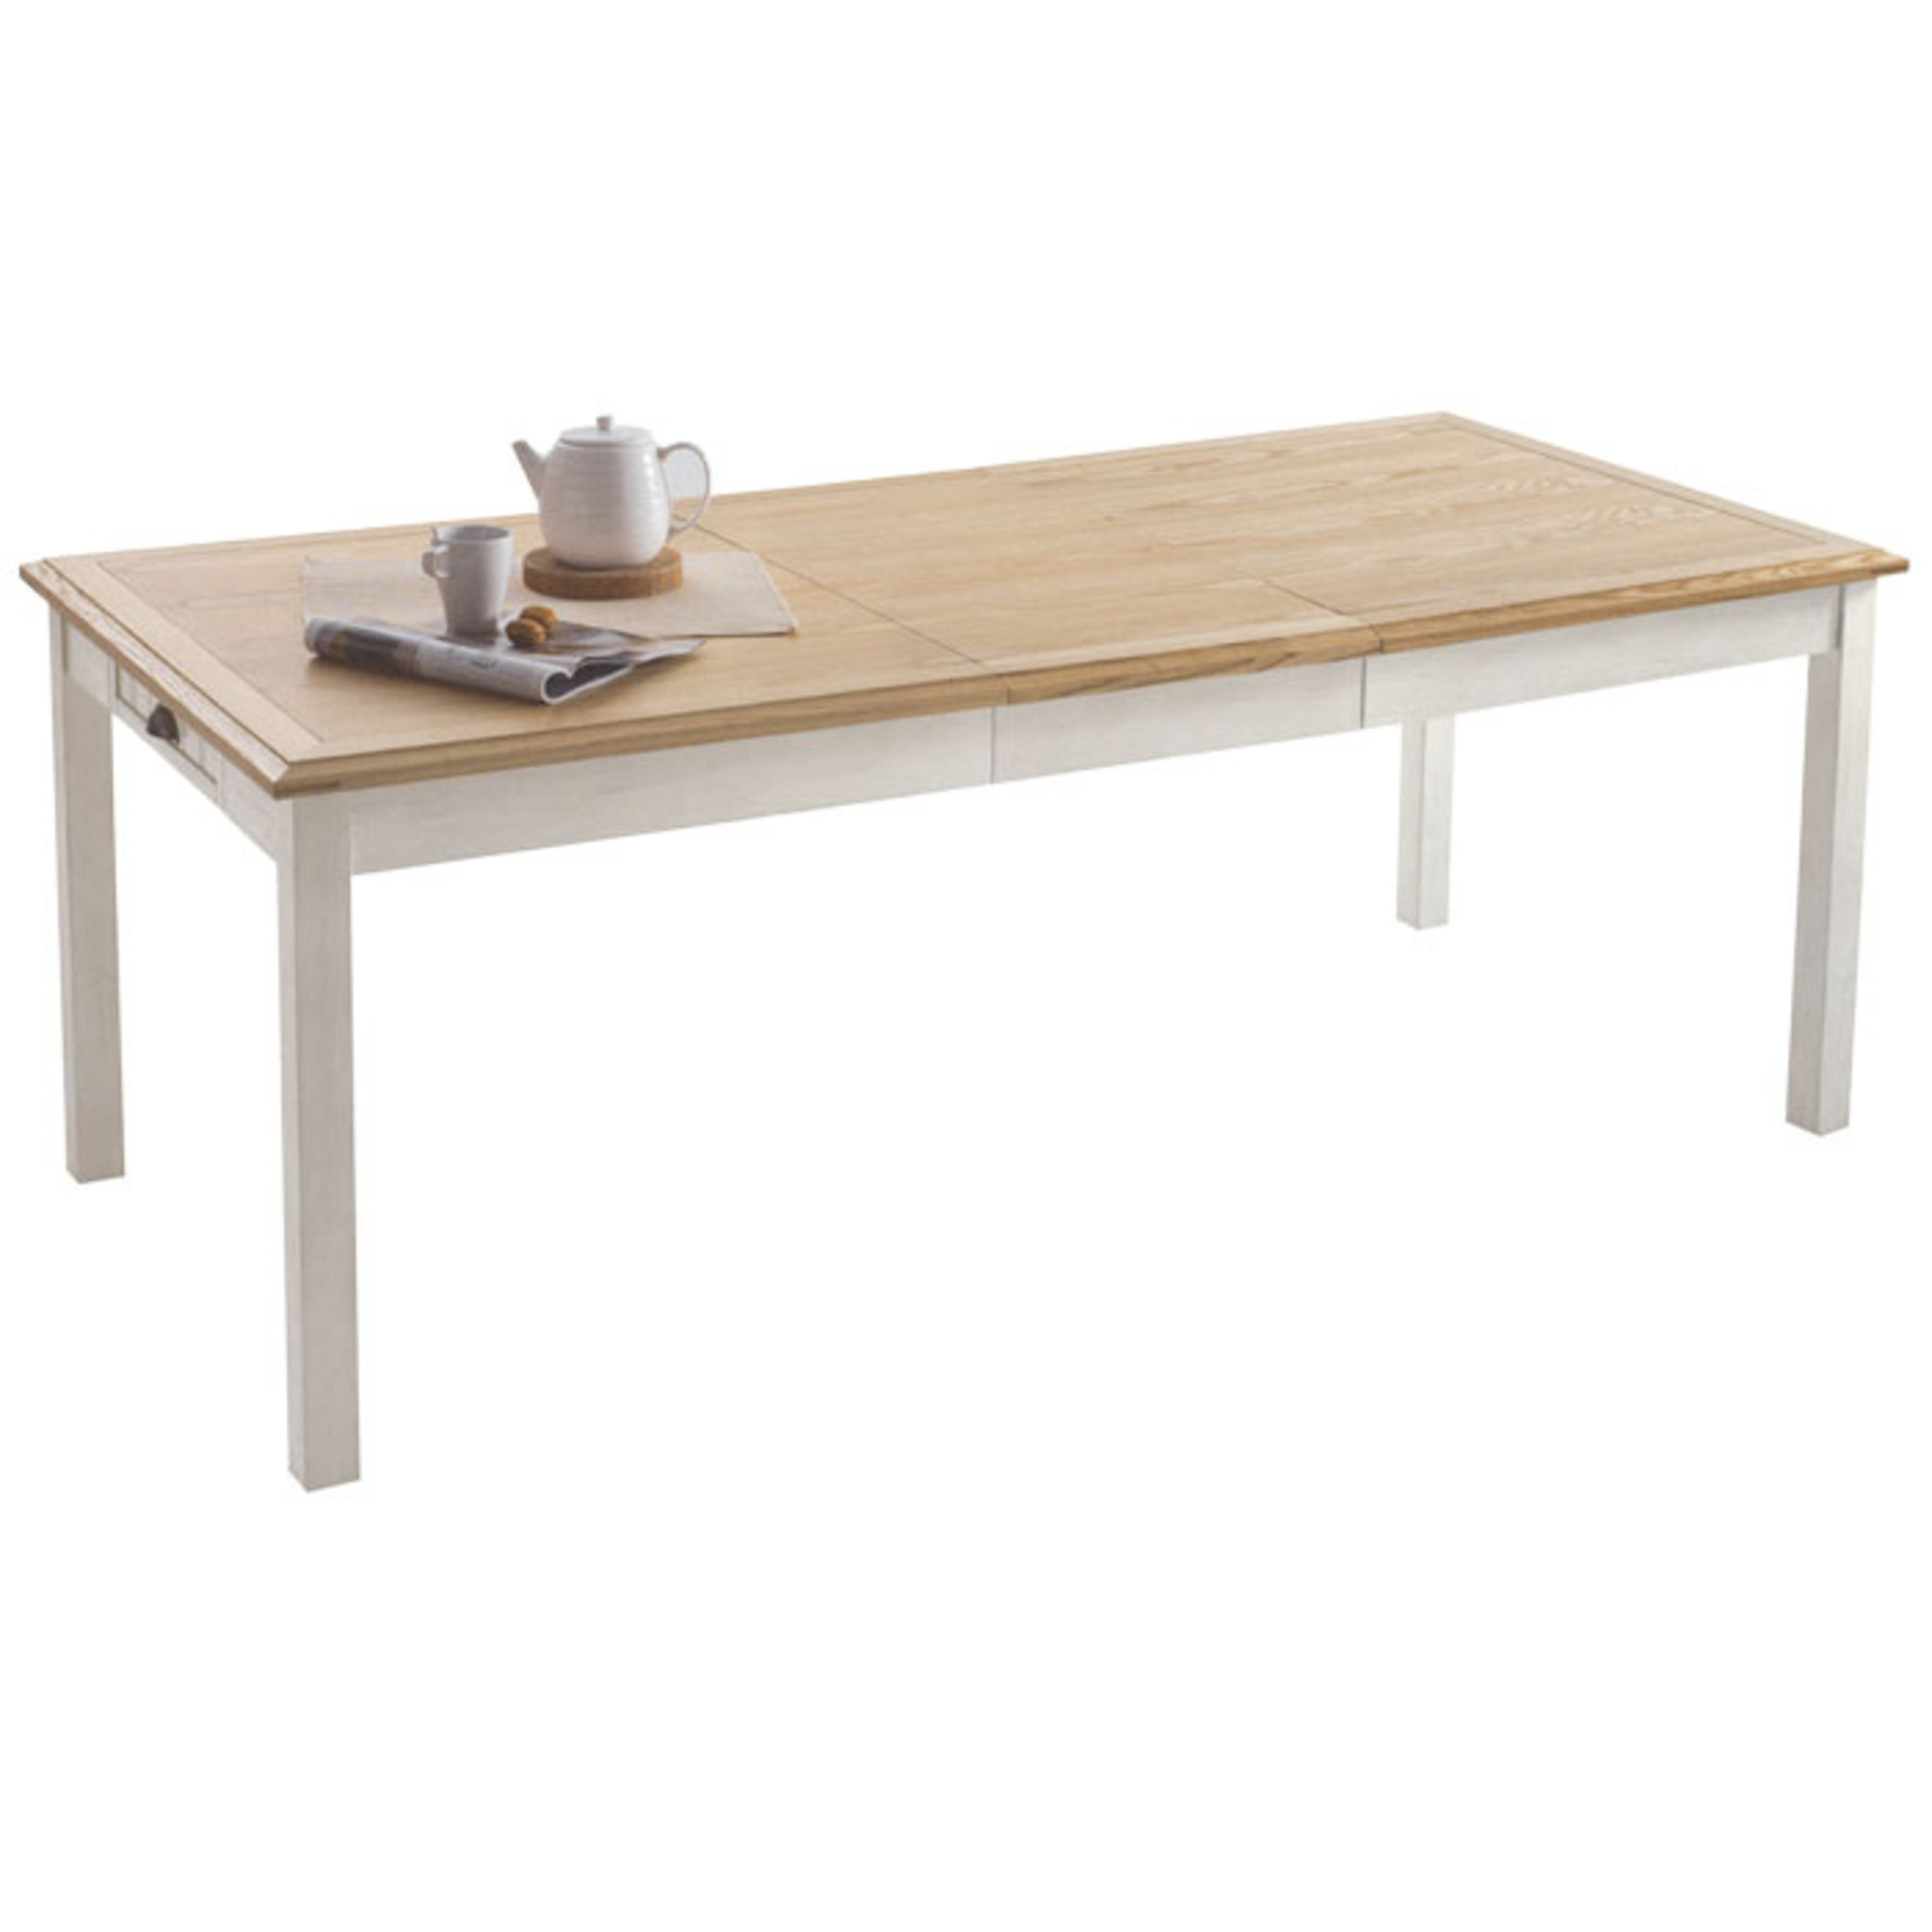 Table rectangulaire allonge berling blanc patin for Table blanche et bois